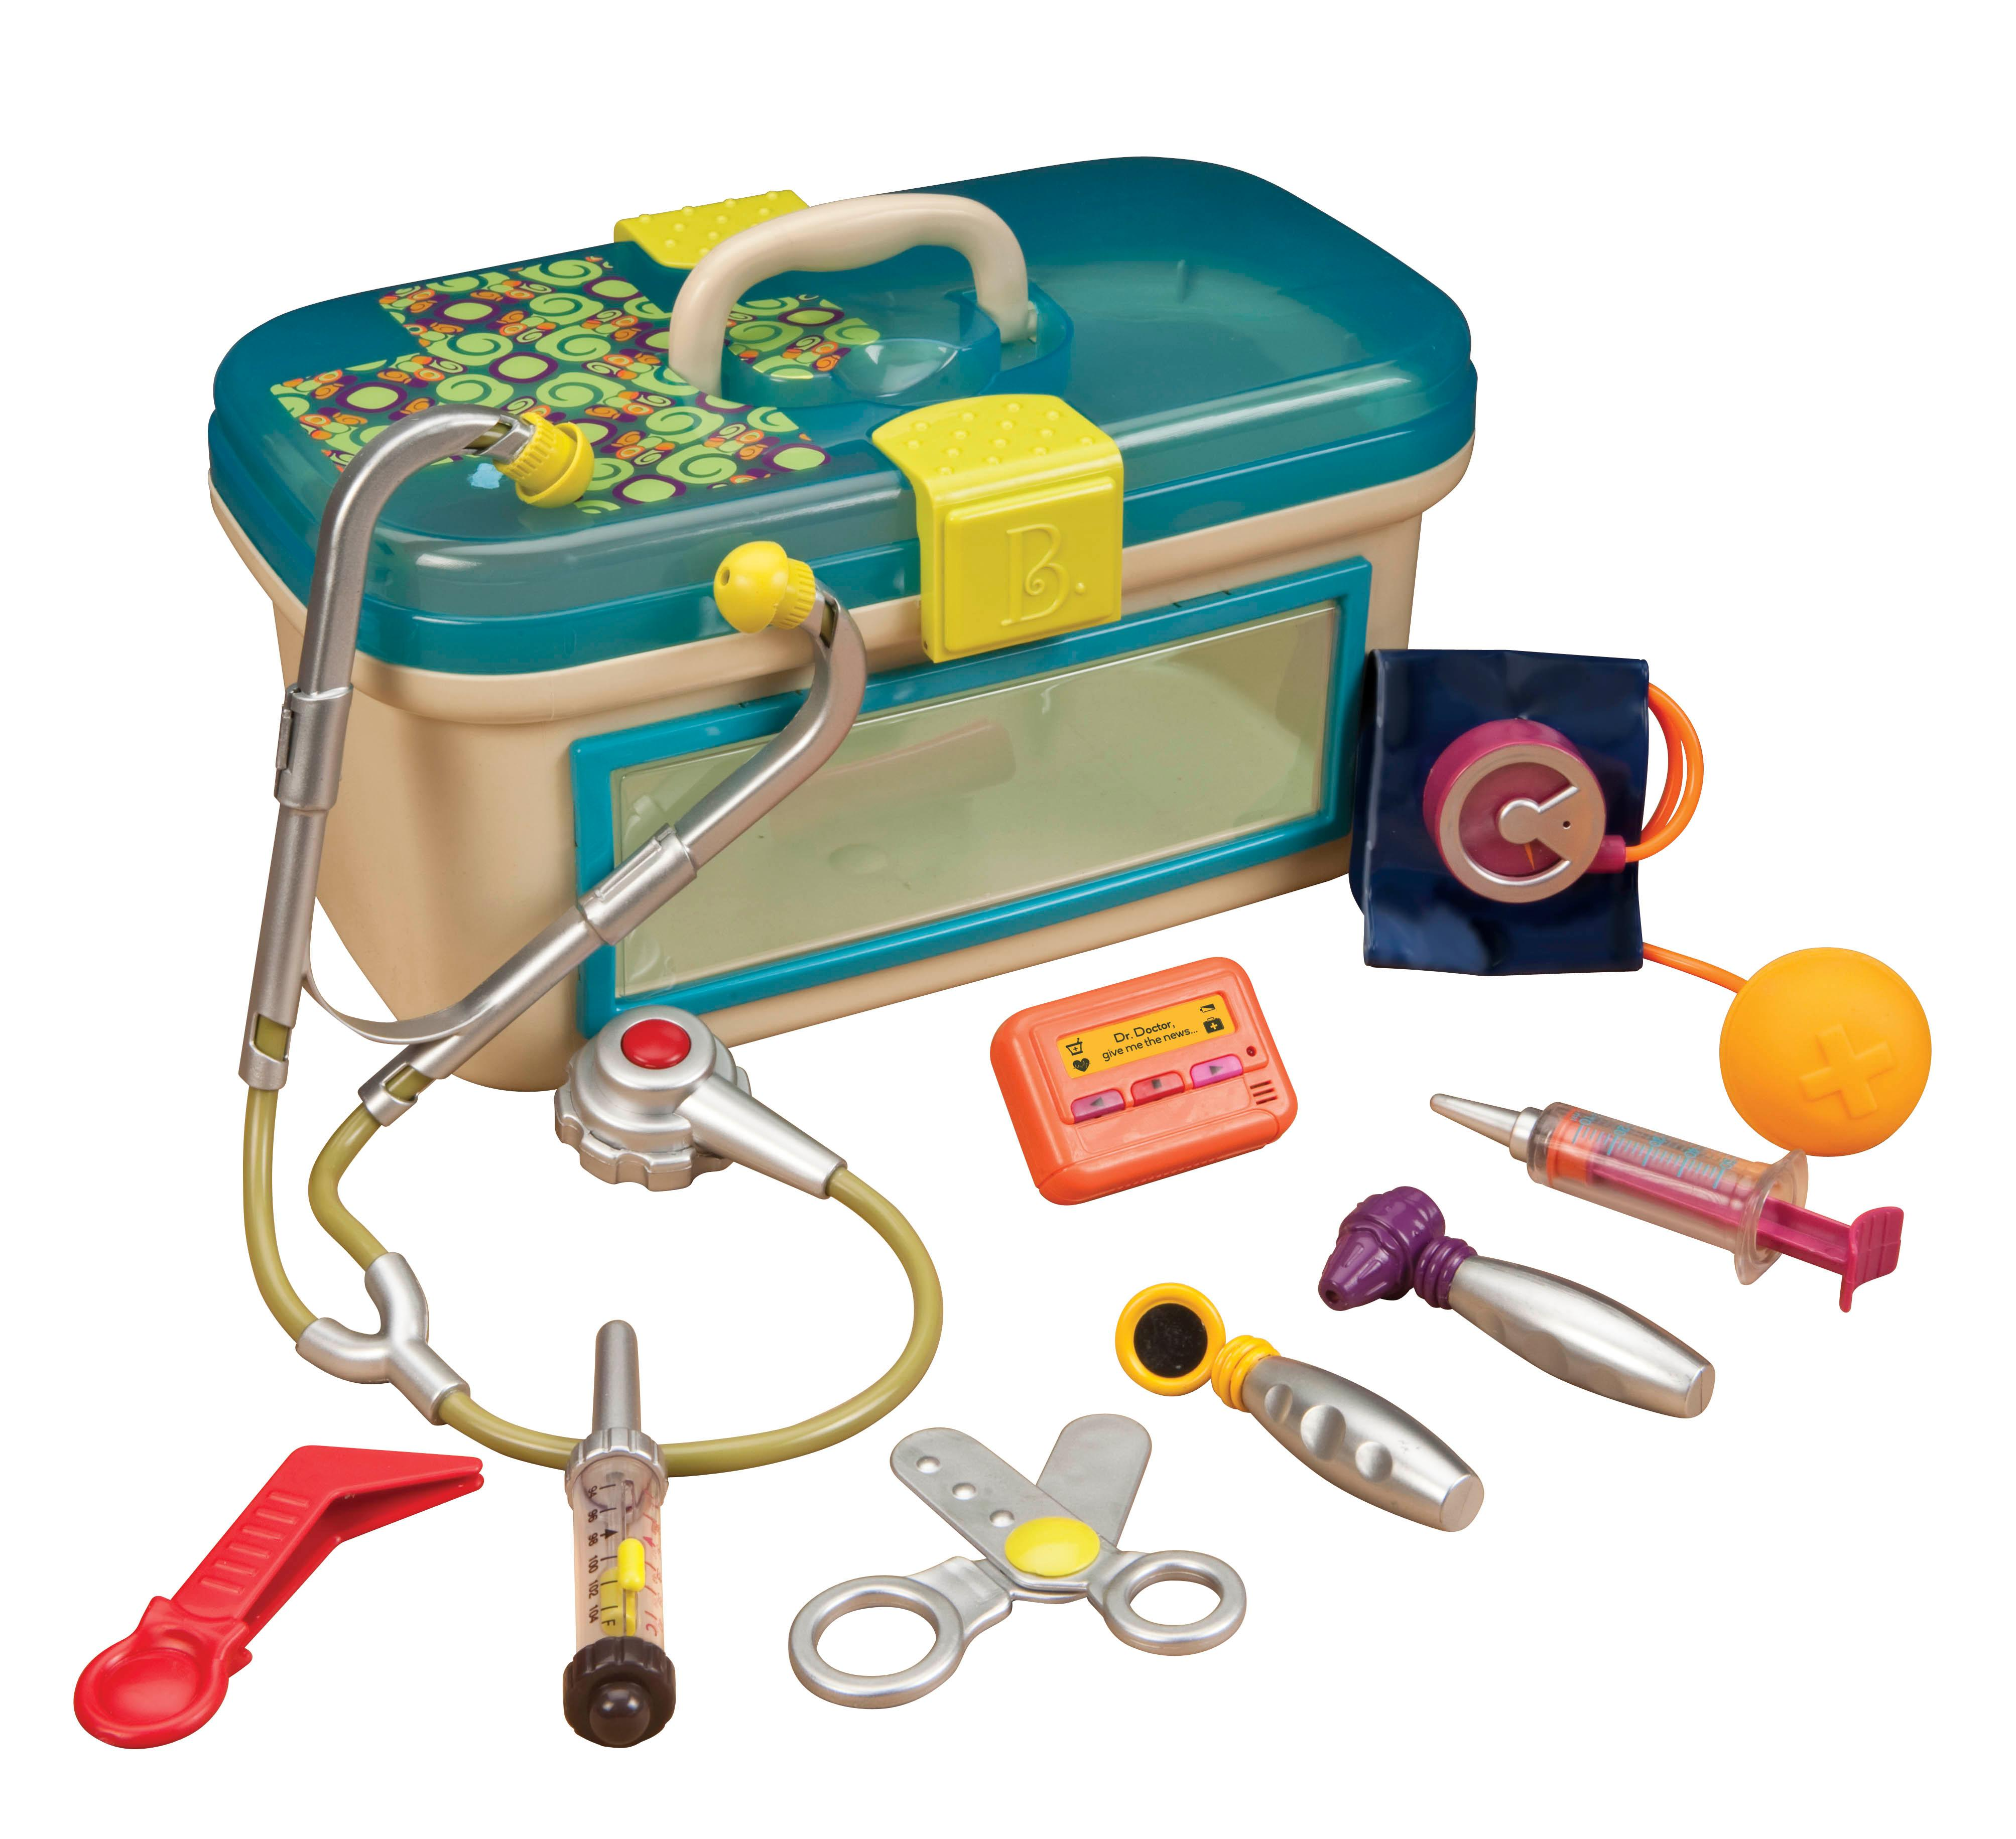 Toy Medical Kit : Amazon b dr doctor toy medical kit for kids pretend